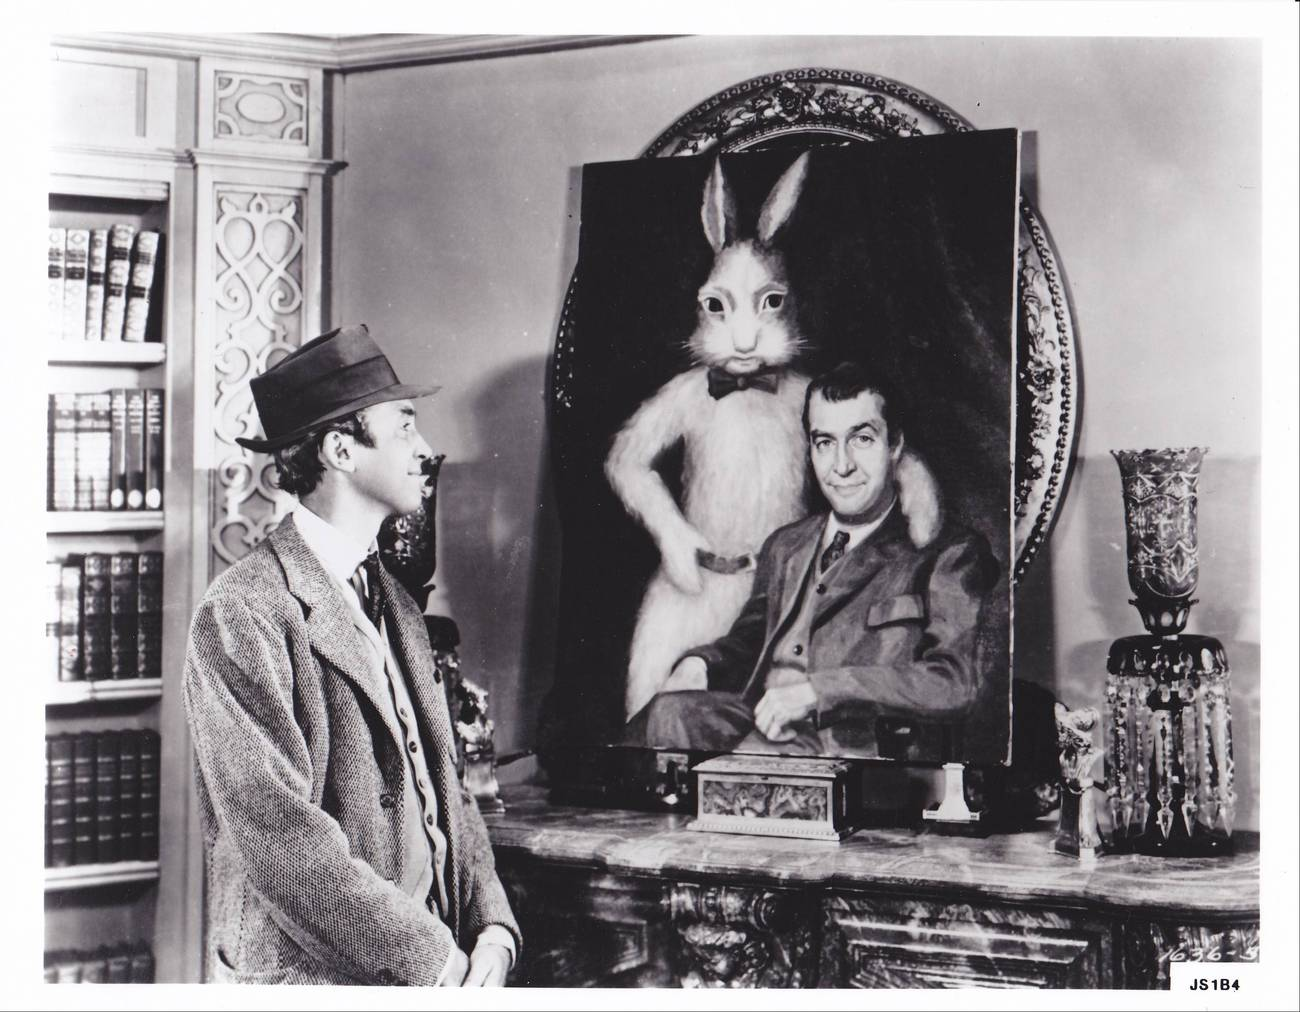 JIMMY STEWART IN HARVEY 8X10 PHOTOGRAPH ORIGINAL RARE ...